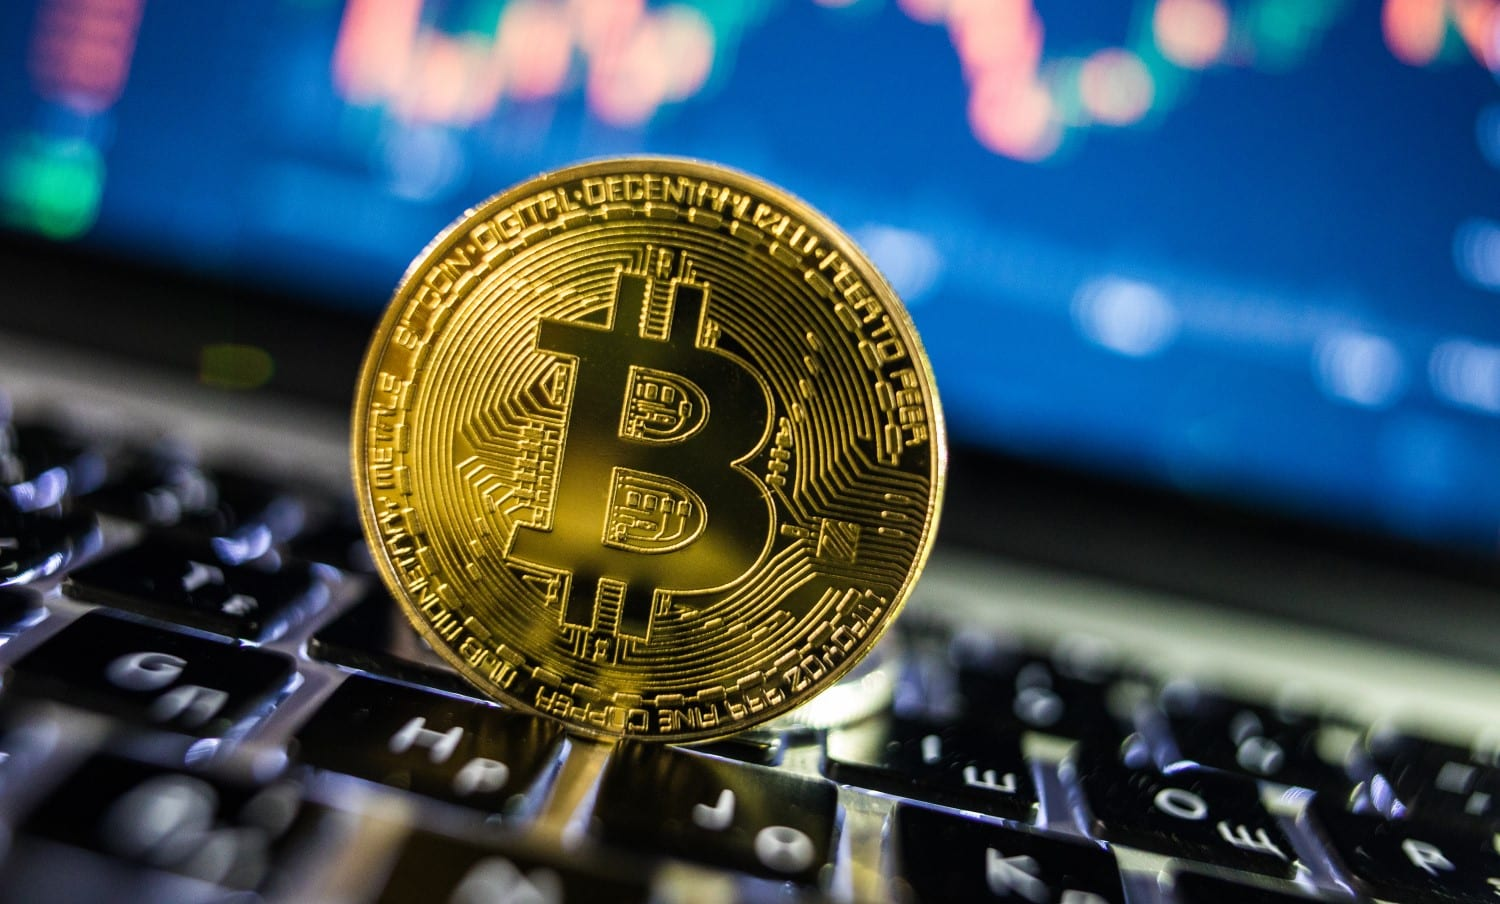 Bitcoin Price Sets Another New Yearly High, Grinding Closer $17,000; How Nigh Is The Reversal?